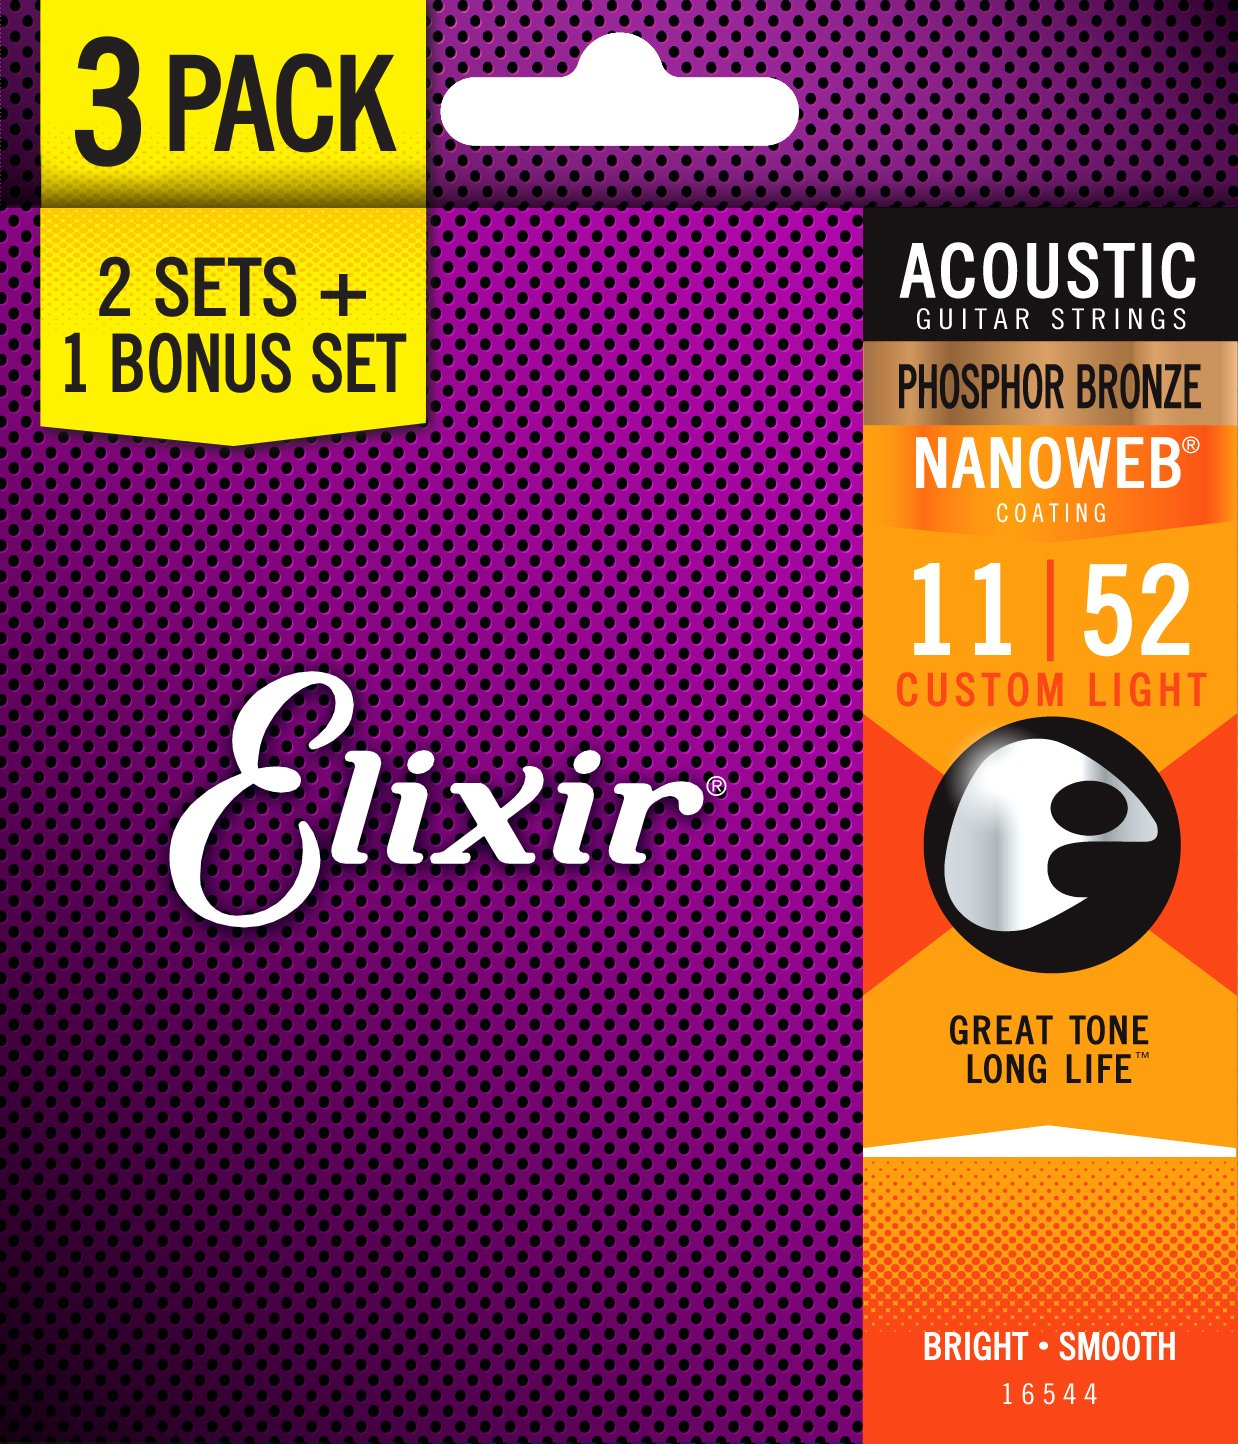 Elixir 16544 Nanoweb Bronze 11-52 Acoustic Guitar Strings 2 Sets Plus 1 Bonus Set Elixir Strings E16544